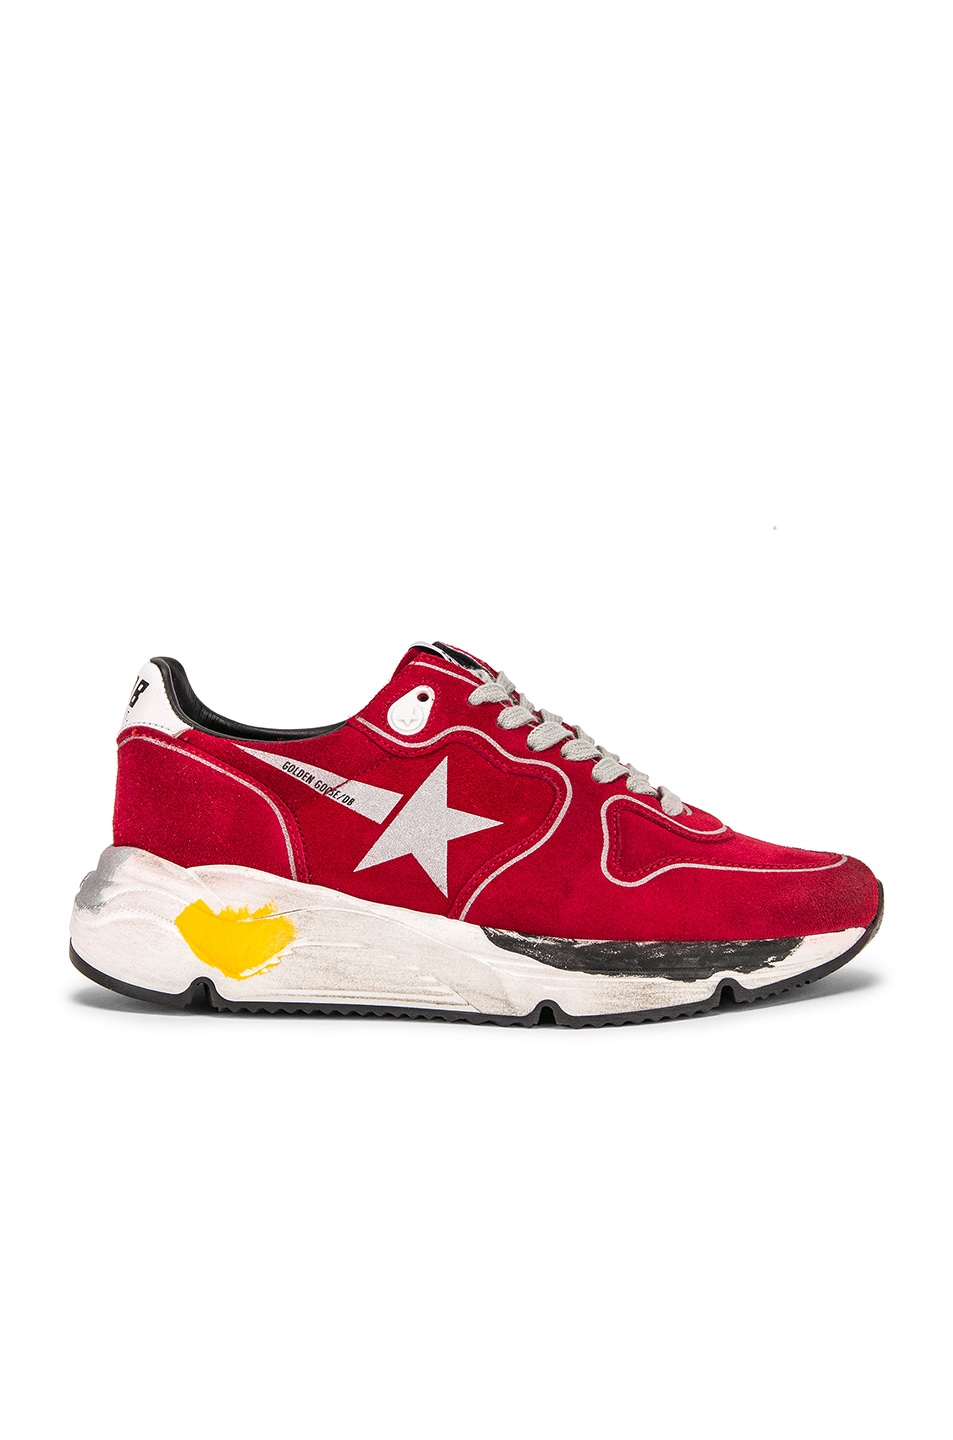 Image 1 of Golden Goose Running Sole Sneakers in Red Suede & Silver Star